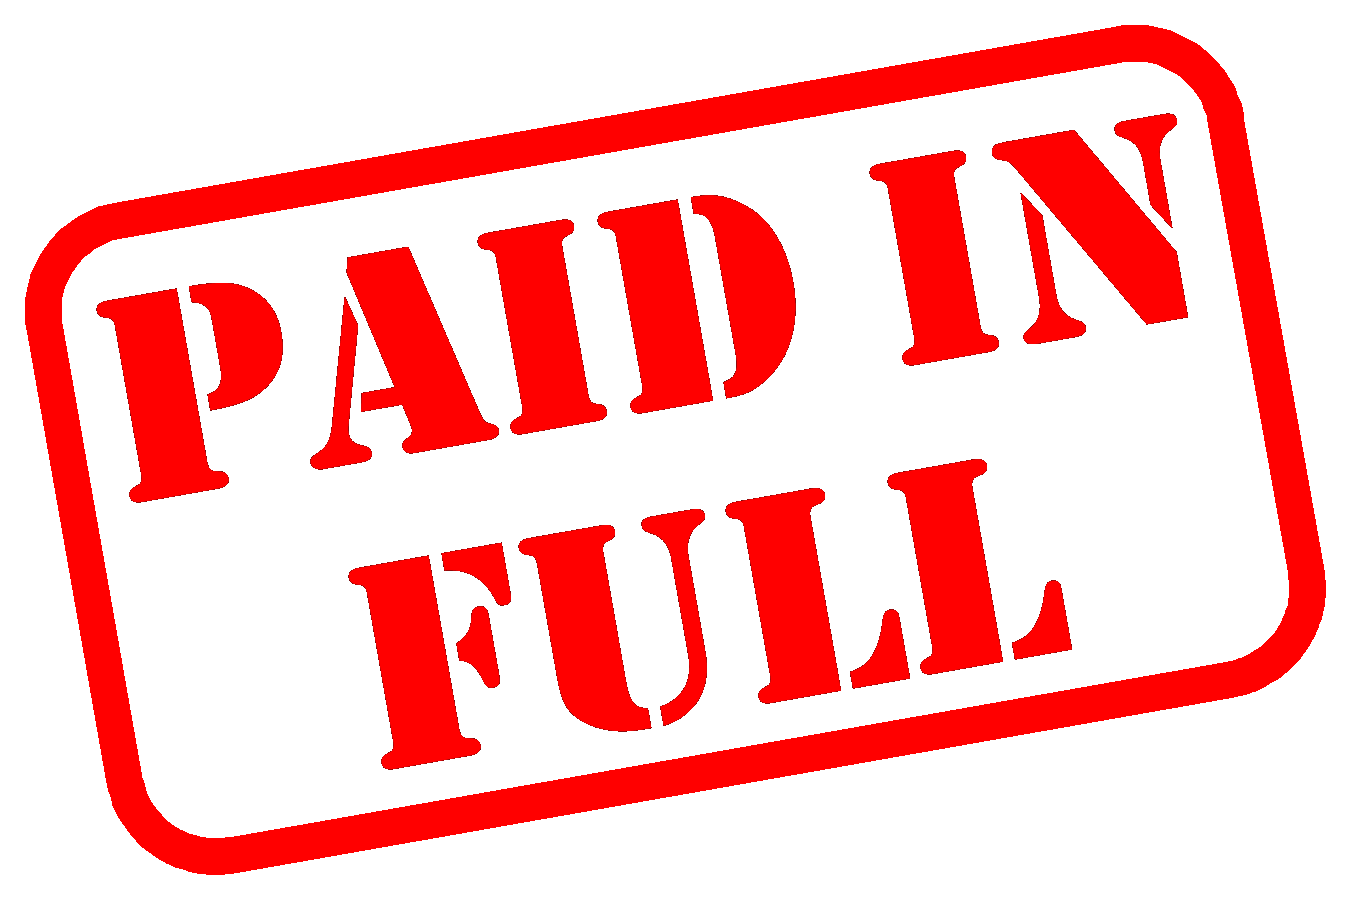 credit card pay off loans